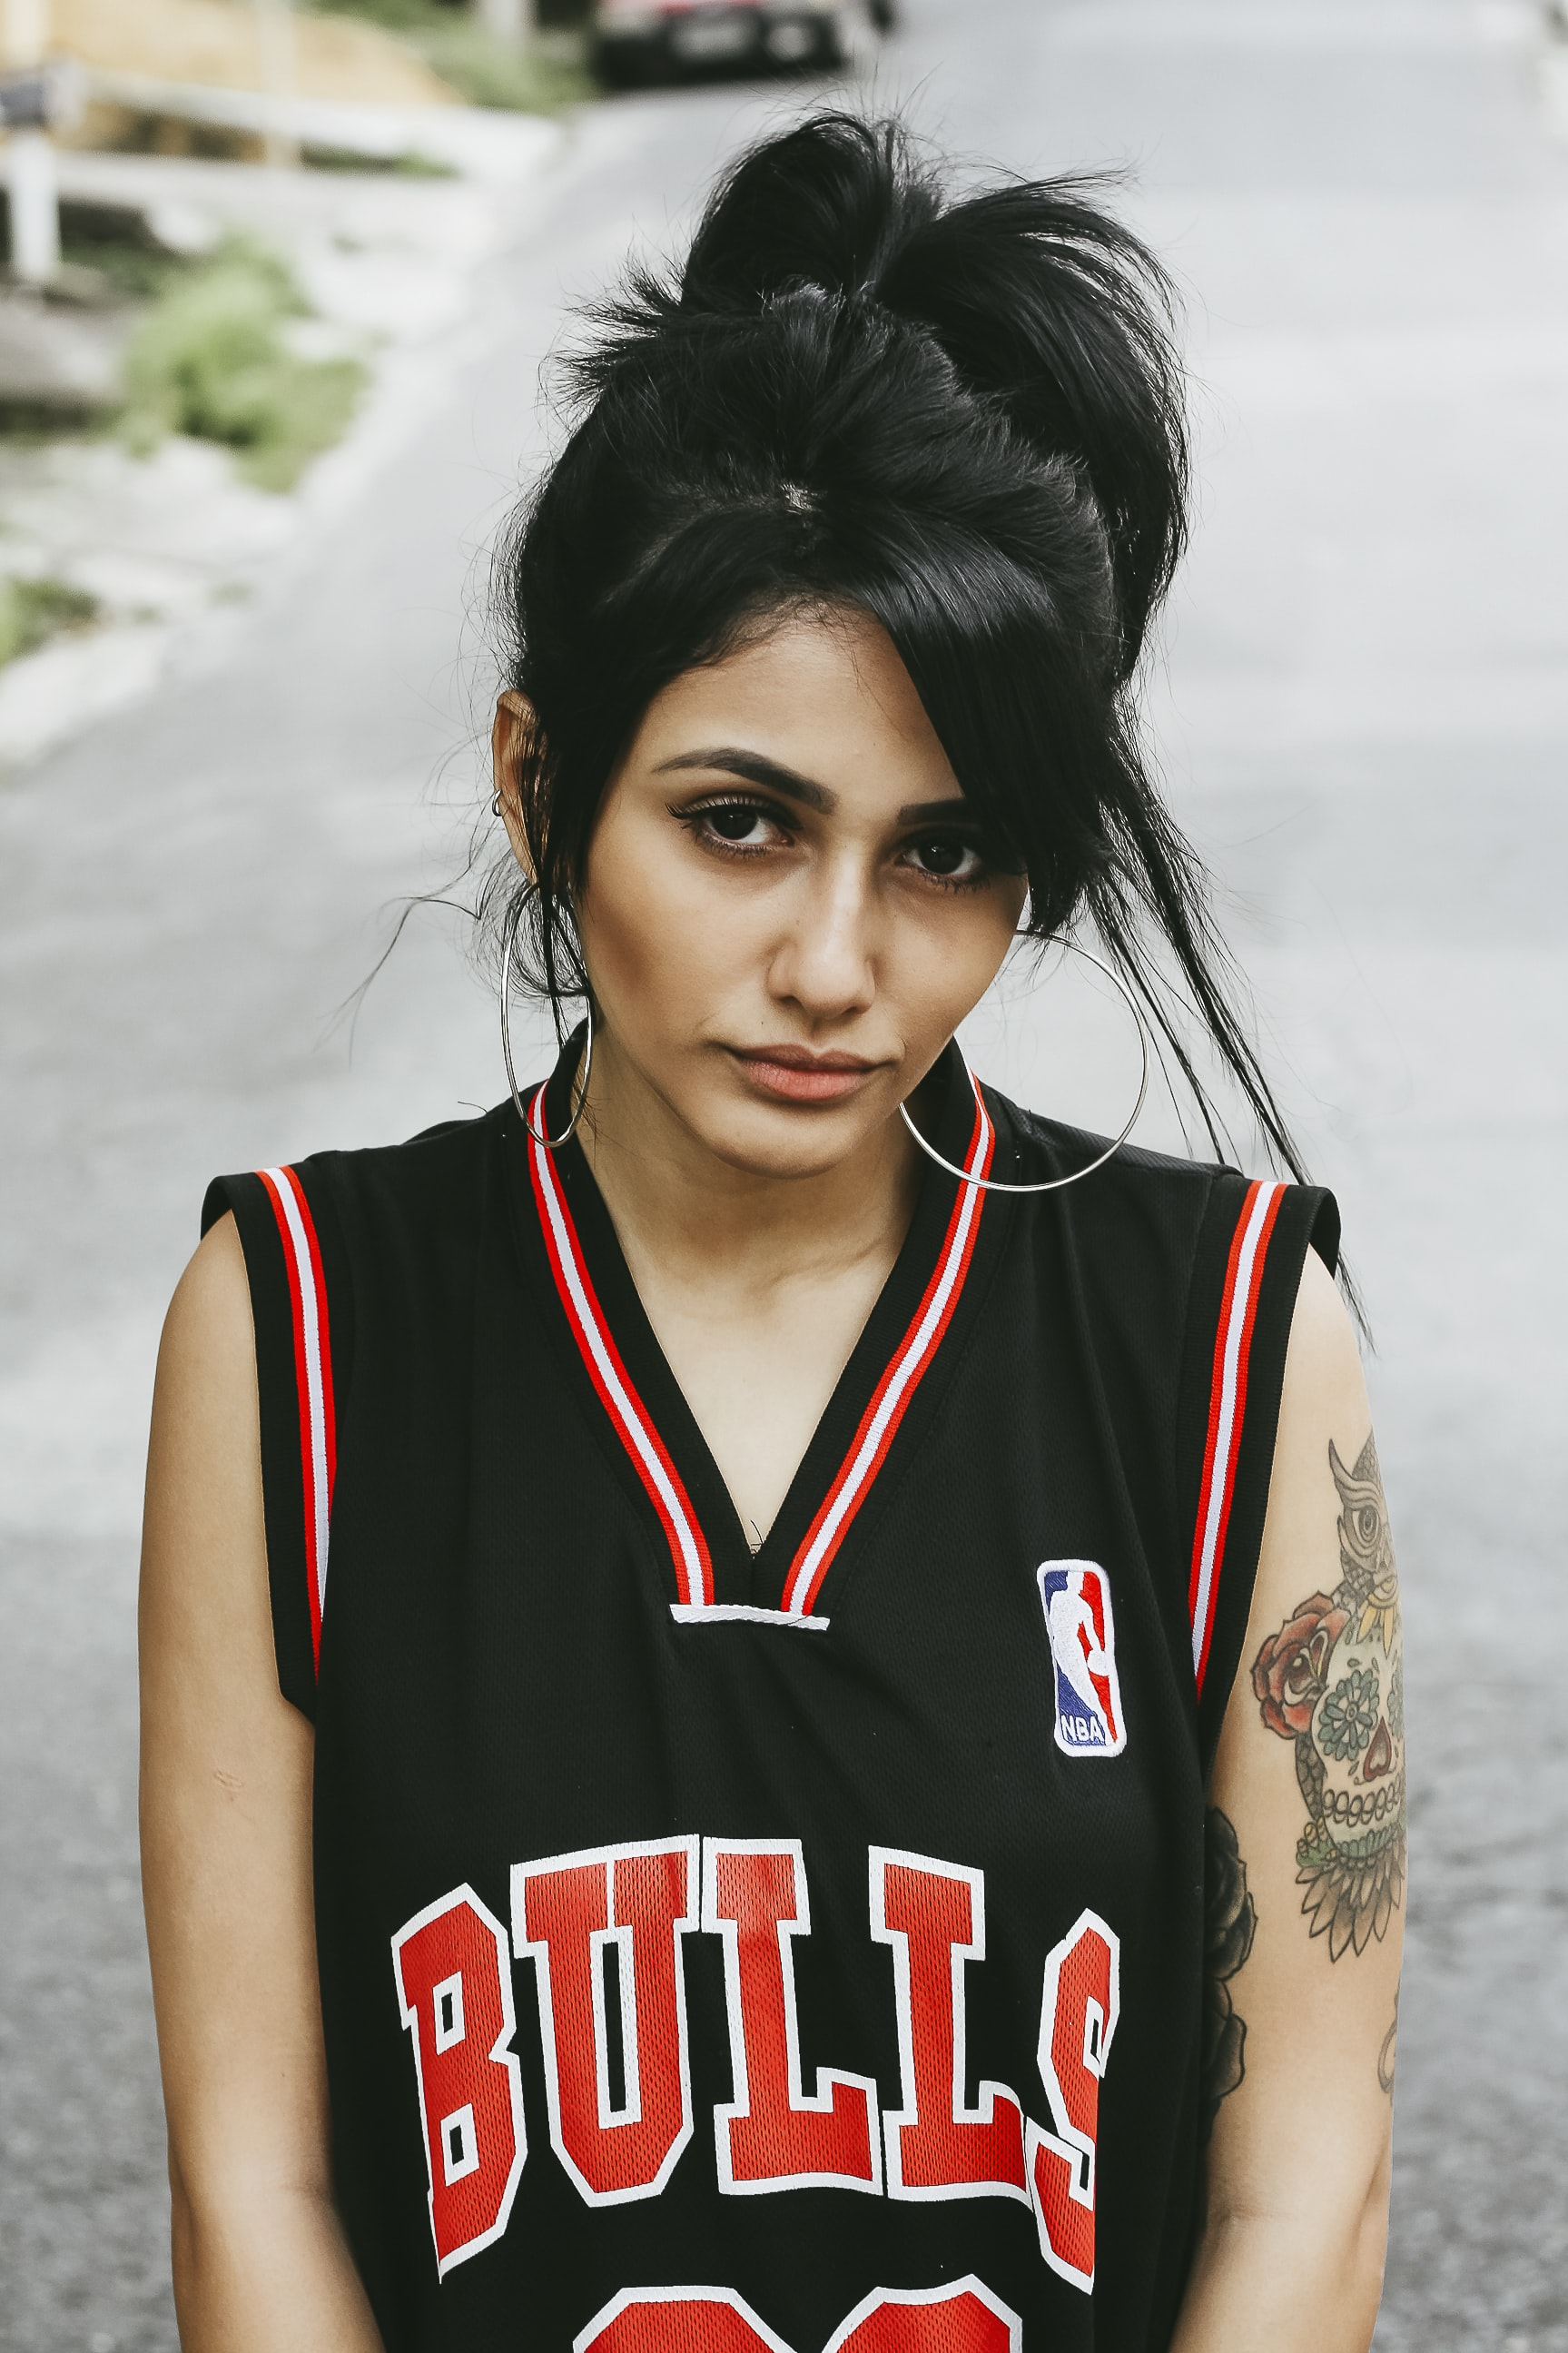 Woman in a retro Bulls basketball jersey and hoop earrings